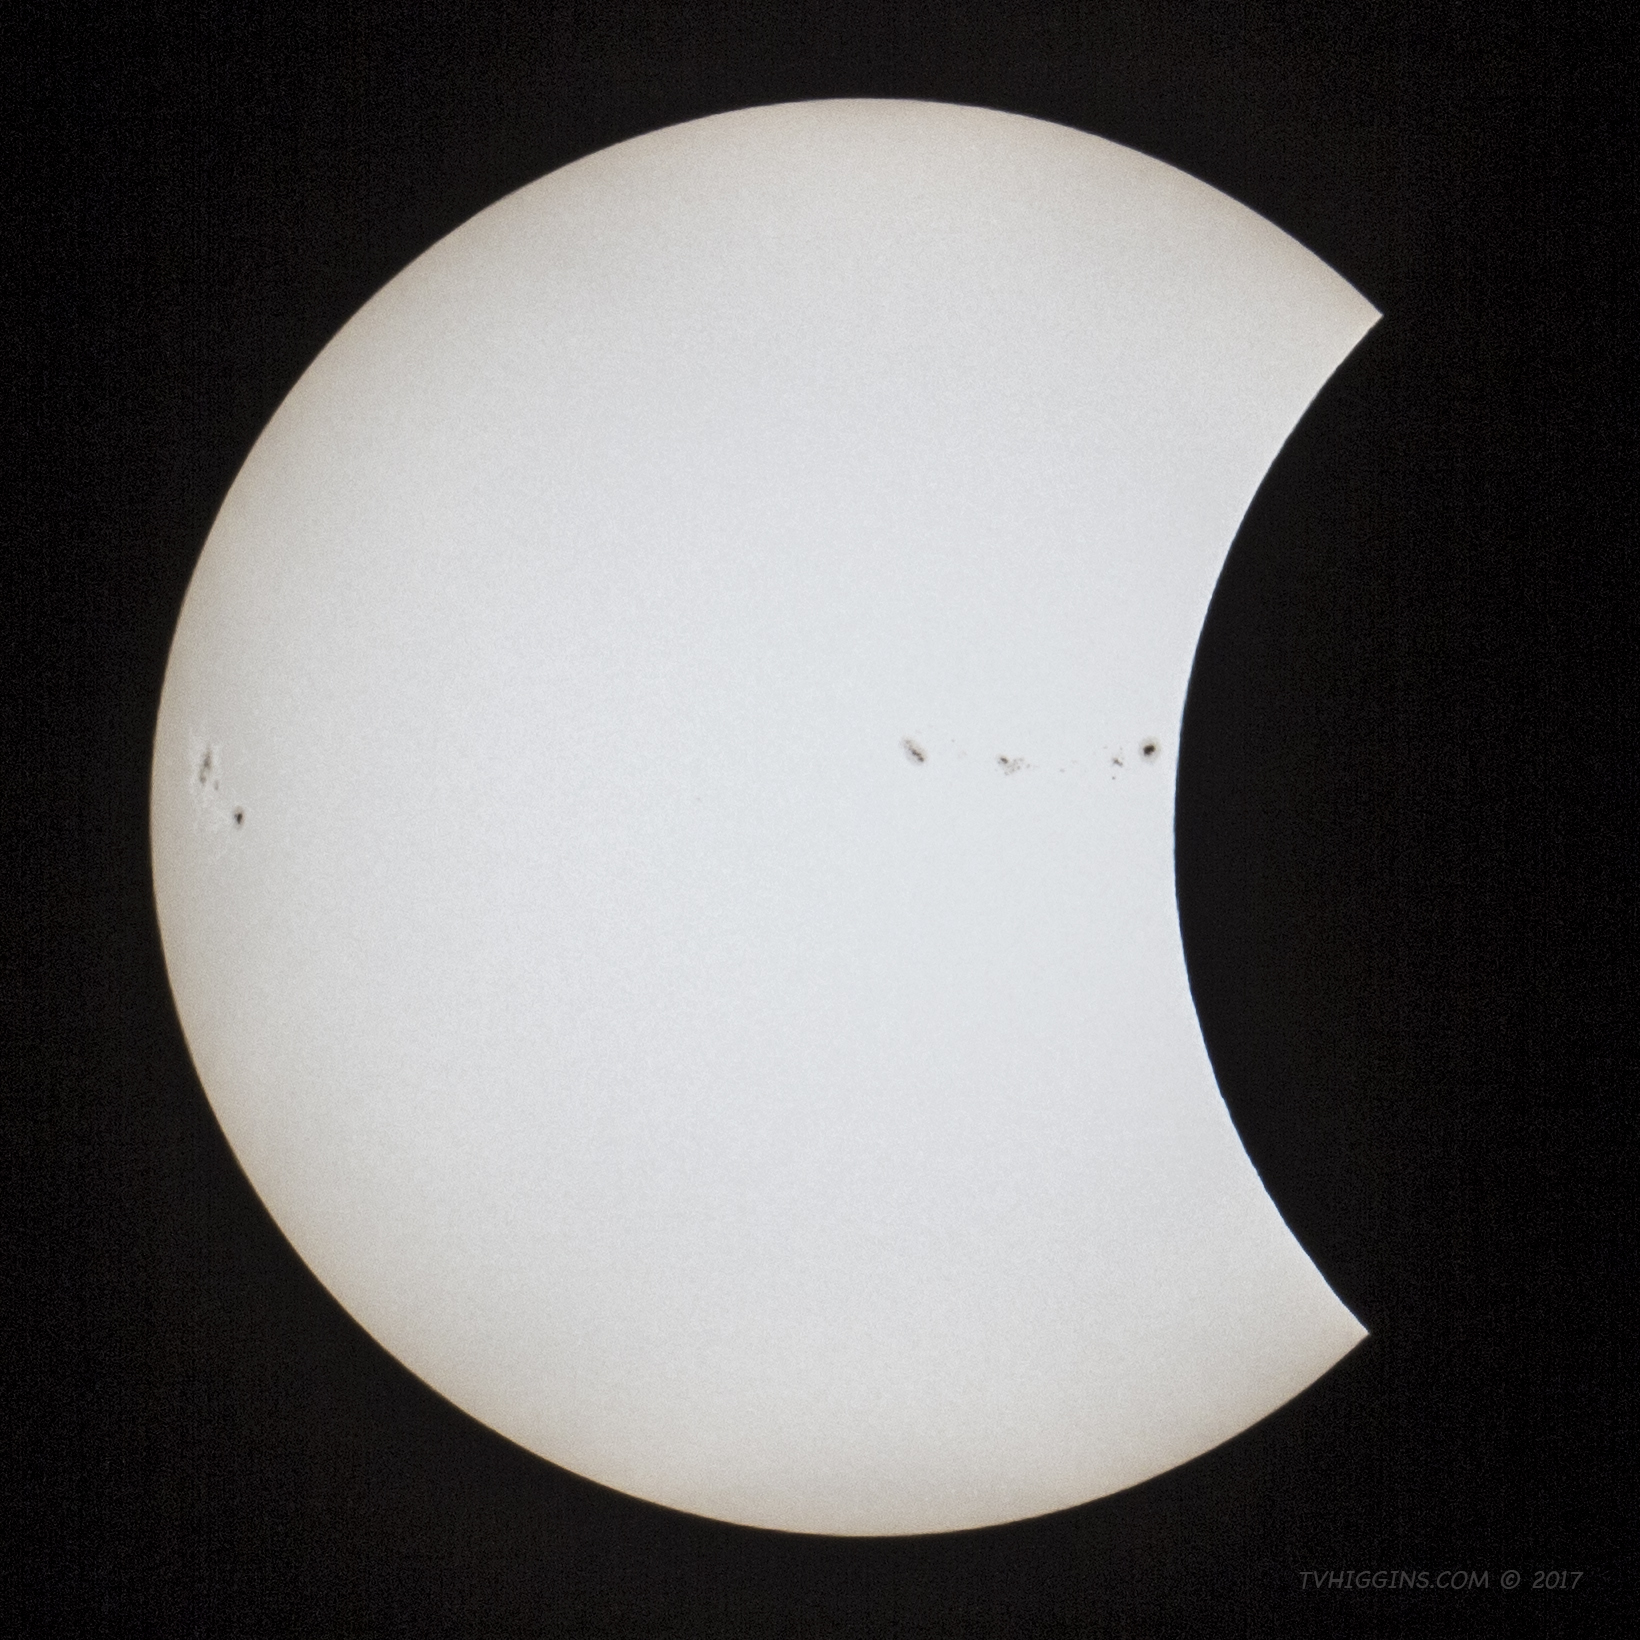 2017 Solar Eclipse: Partial Phase I